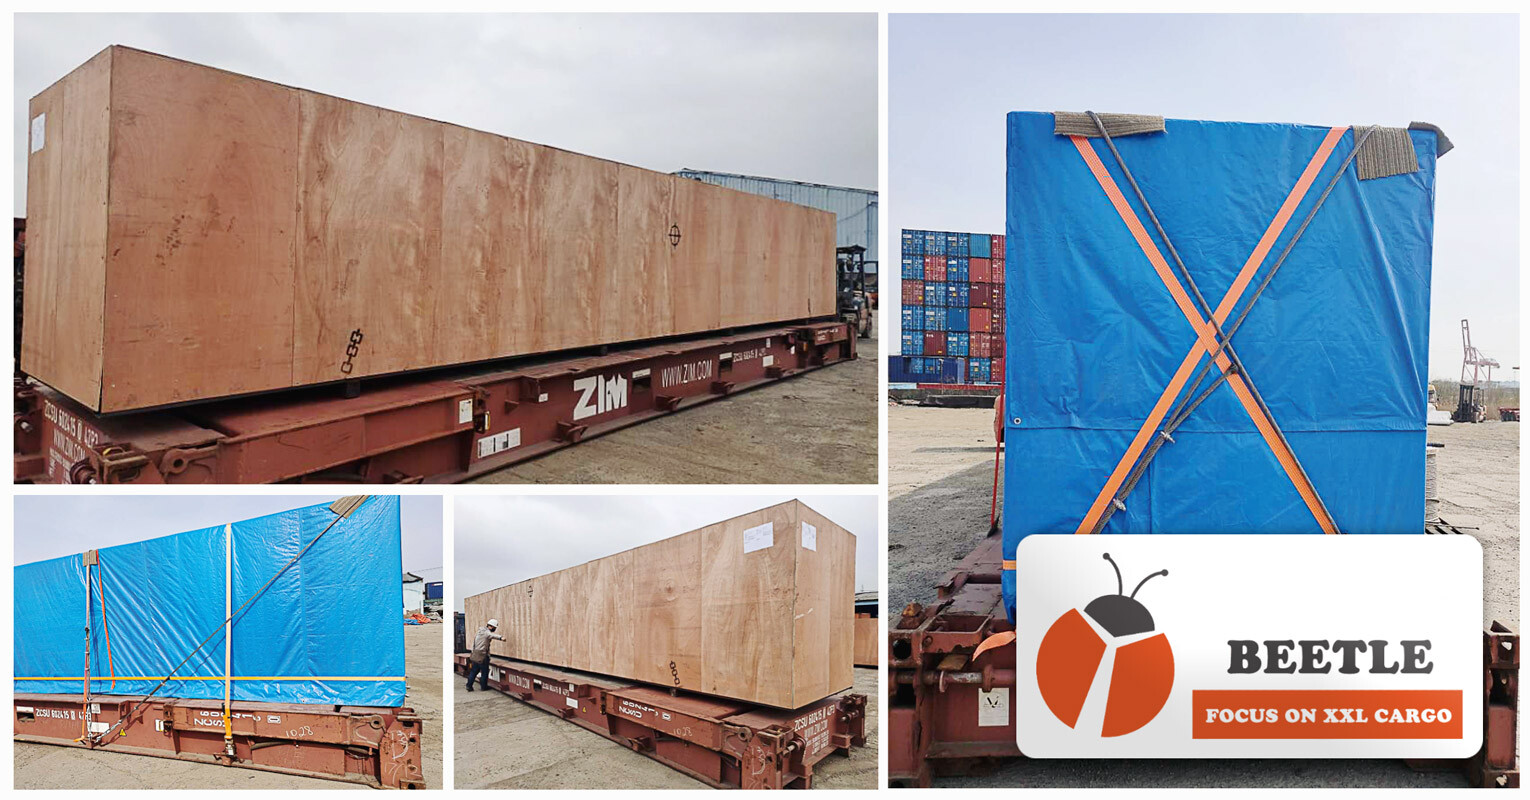 Shanghai Beetle had Done Overlength Shipment from Shanghai to Odessa